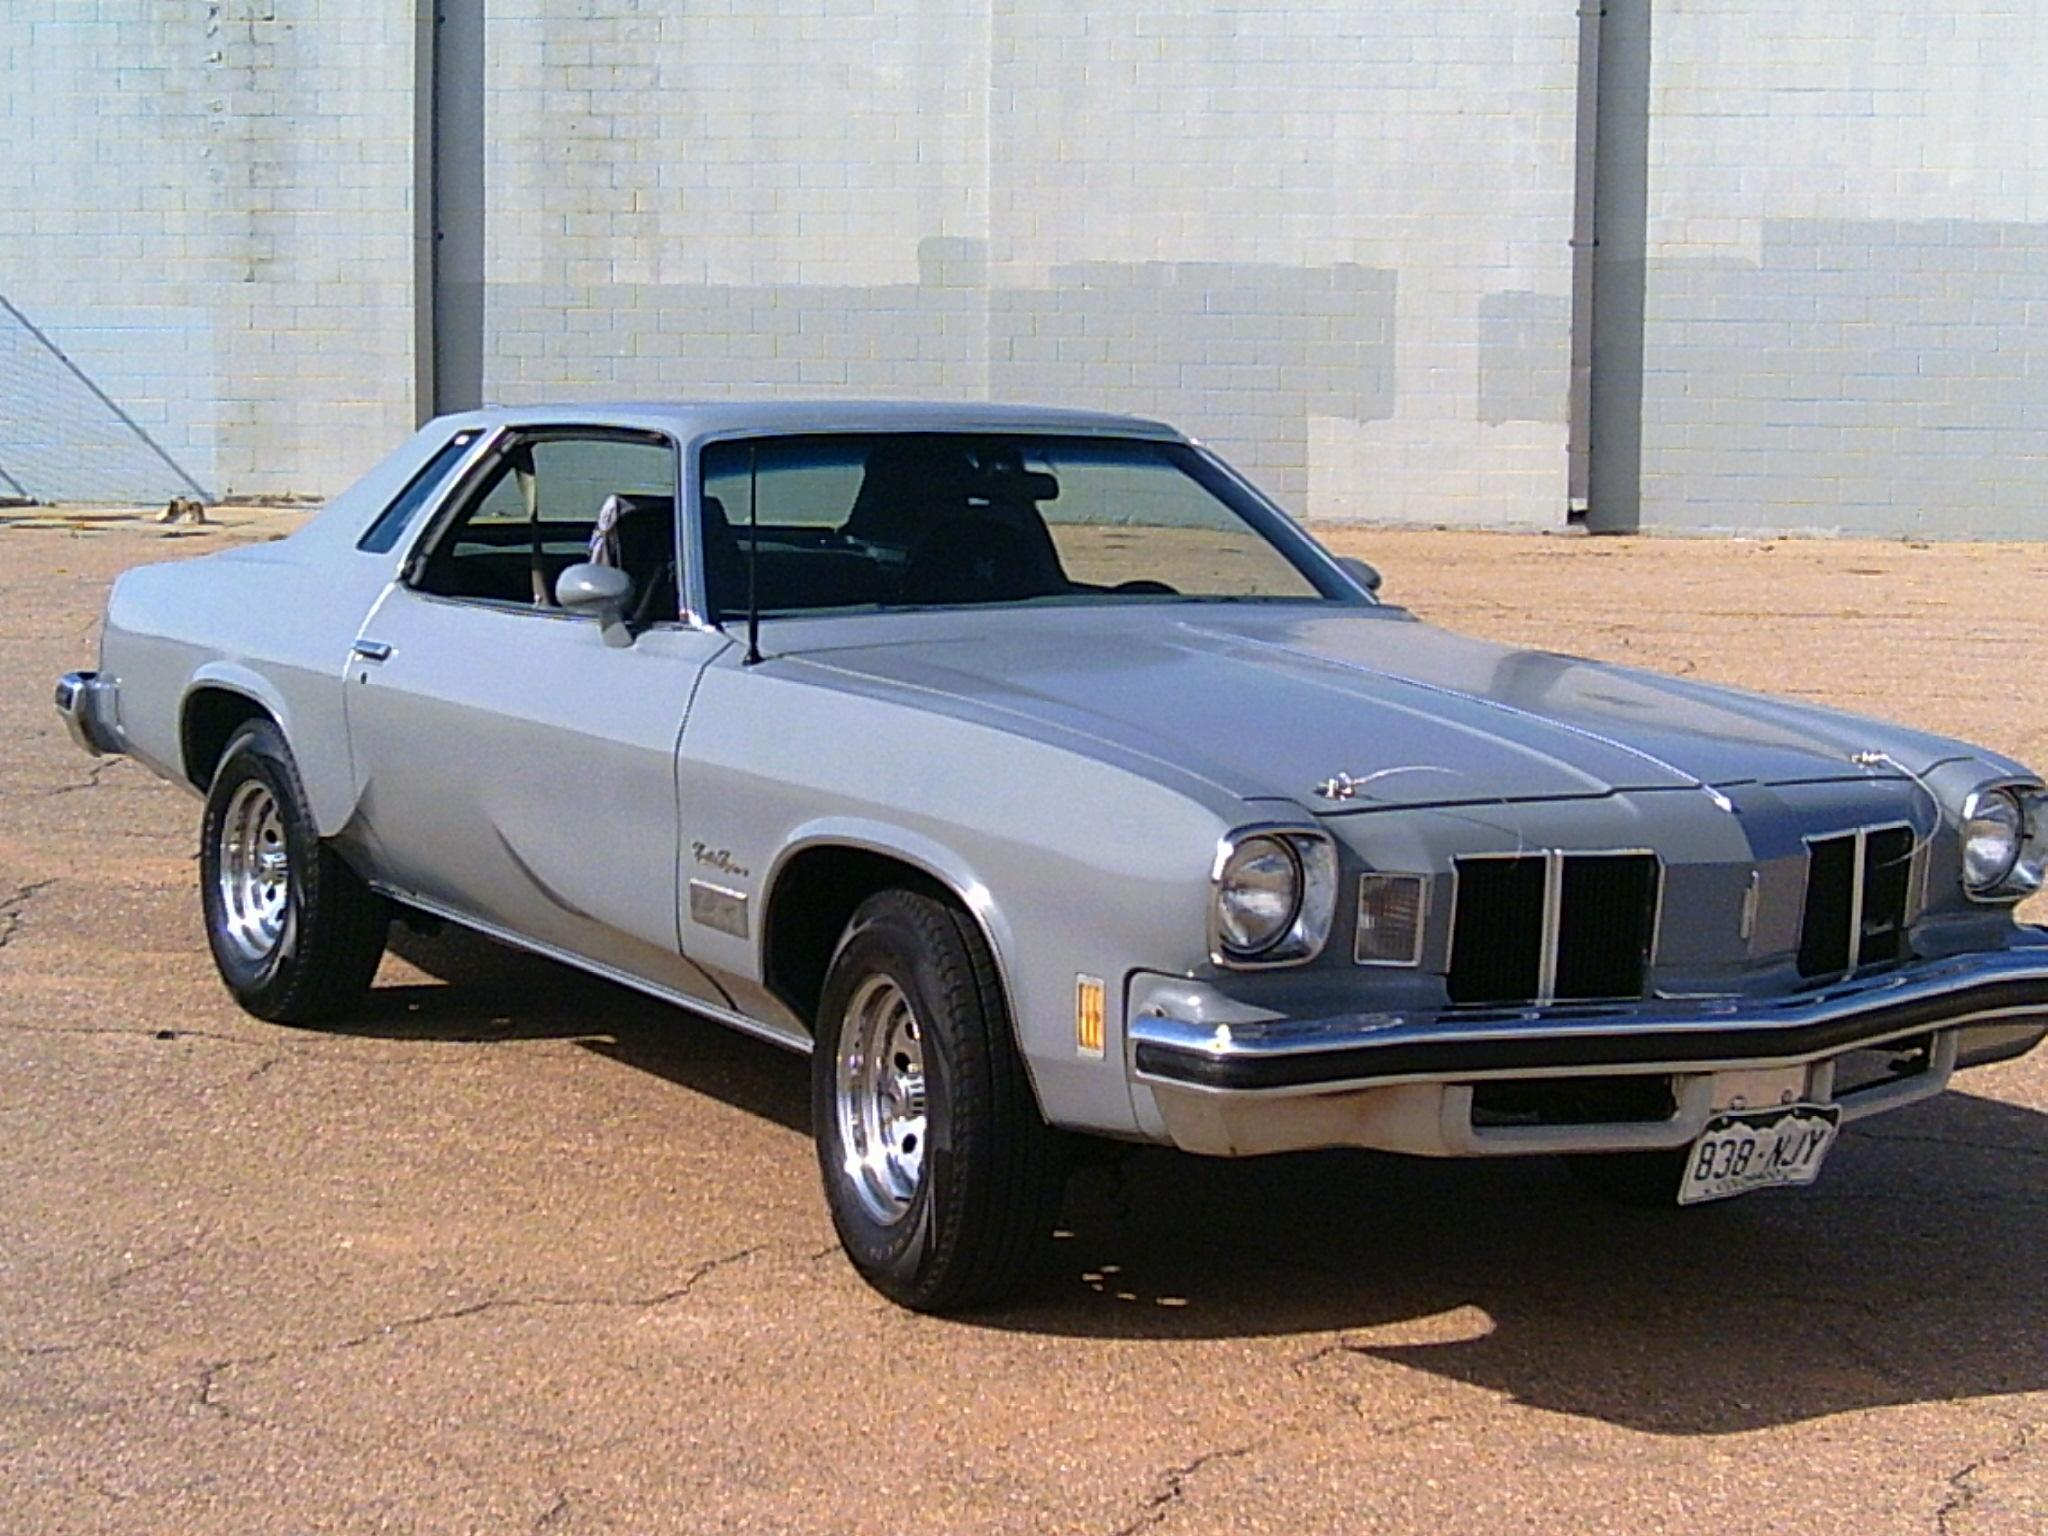 Rocketman1974 1974 oldsmobile cutlass supreme specs for 1974 oldsmobile cutlass salon